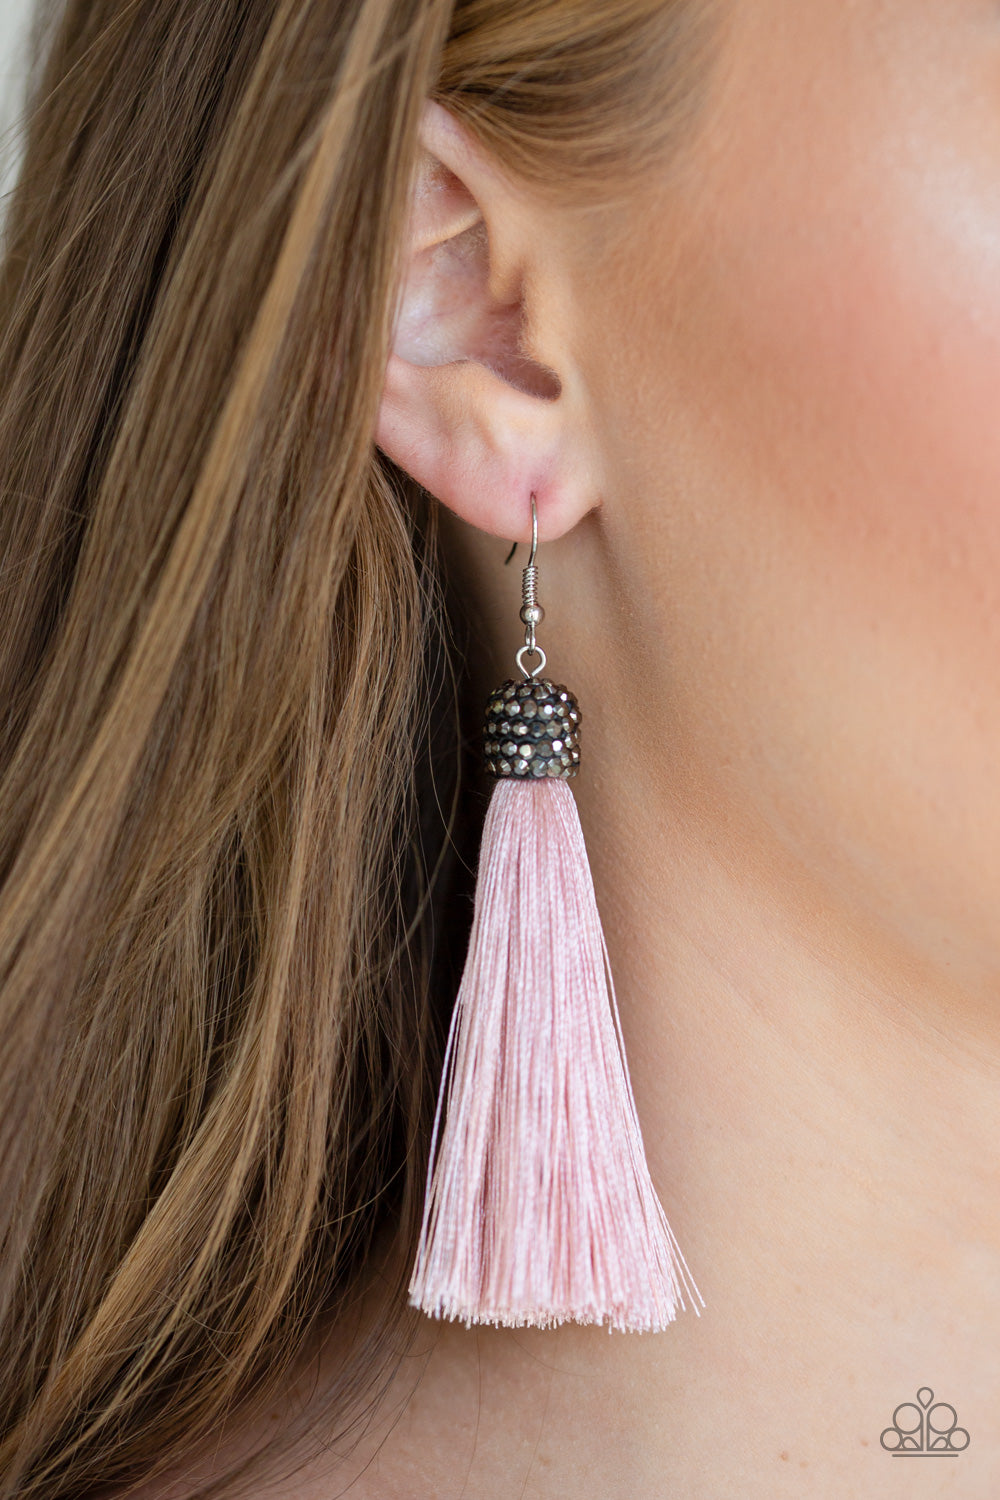 Make Room For Plume - Pink Tassel - Paparazzi Jewelry Earrings paparazzi accessories jewelry Earrings